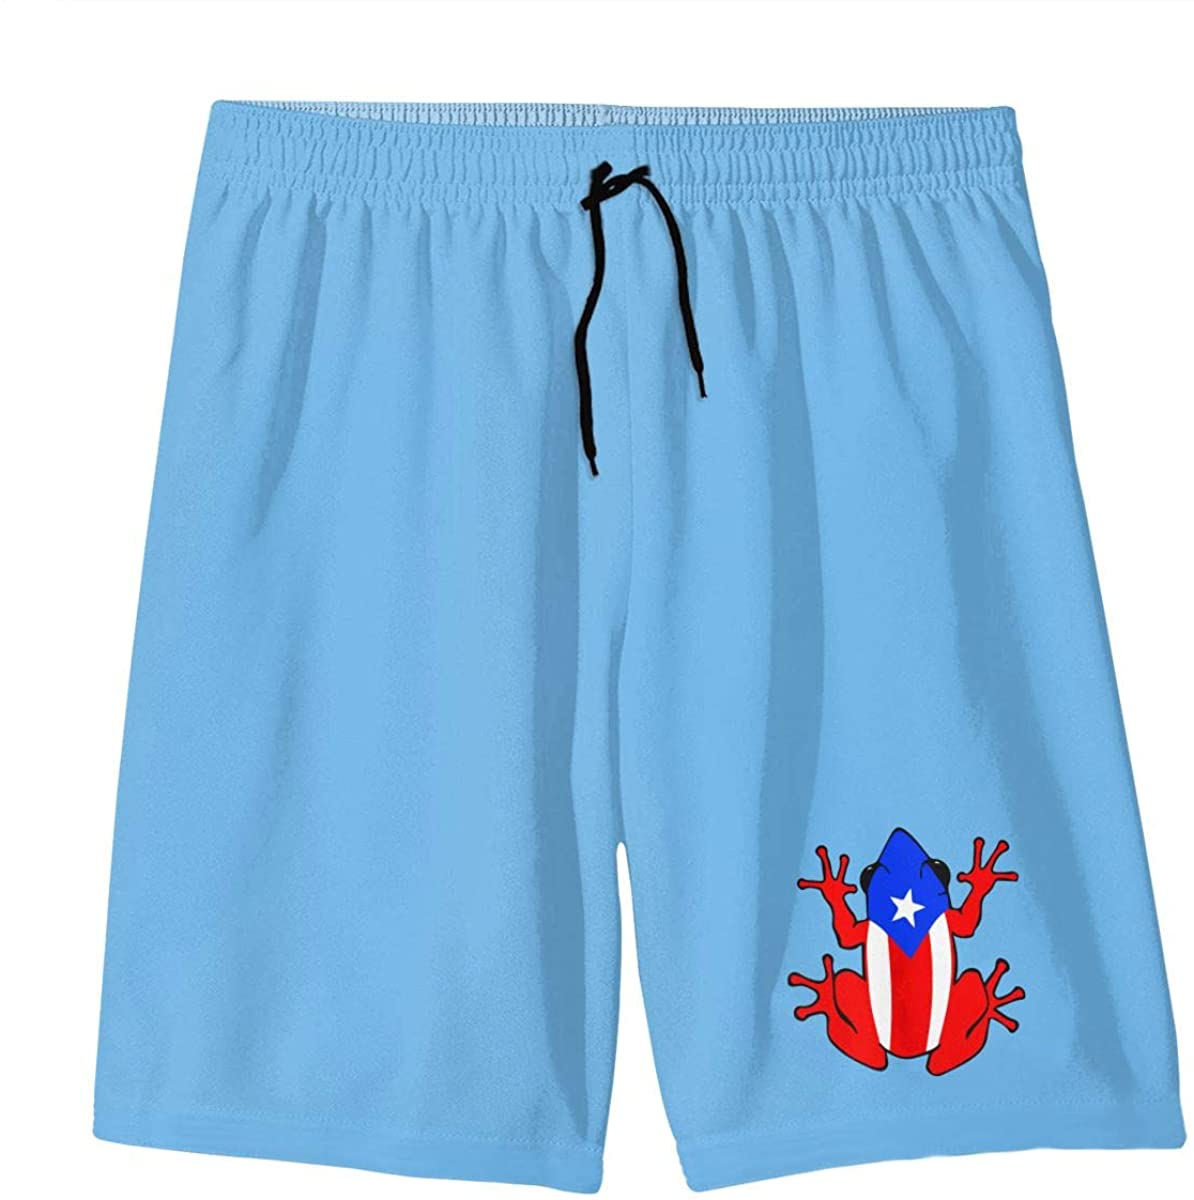 Puerto Rico Flag Frog Teens Swim Trunks Beach Shorts Surfing Board Quick Dry Bathing Suit